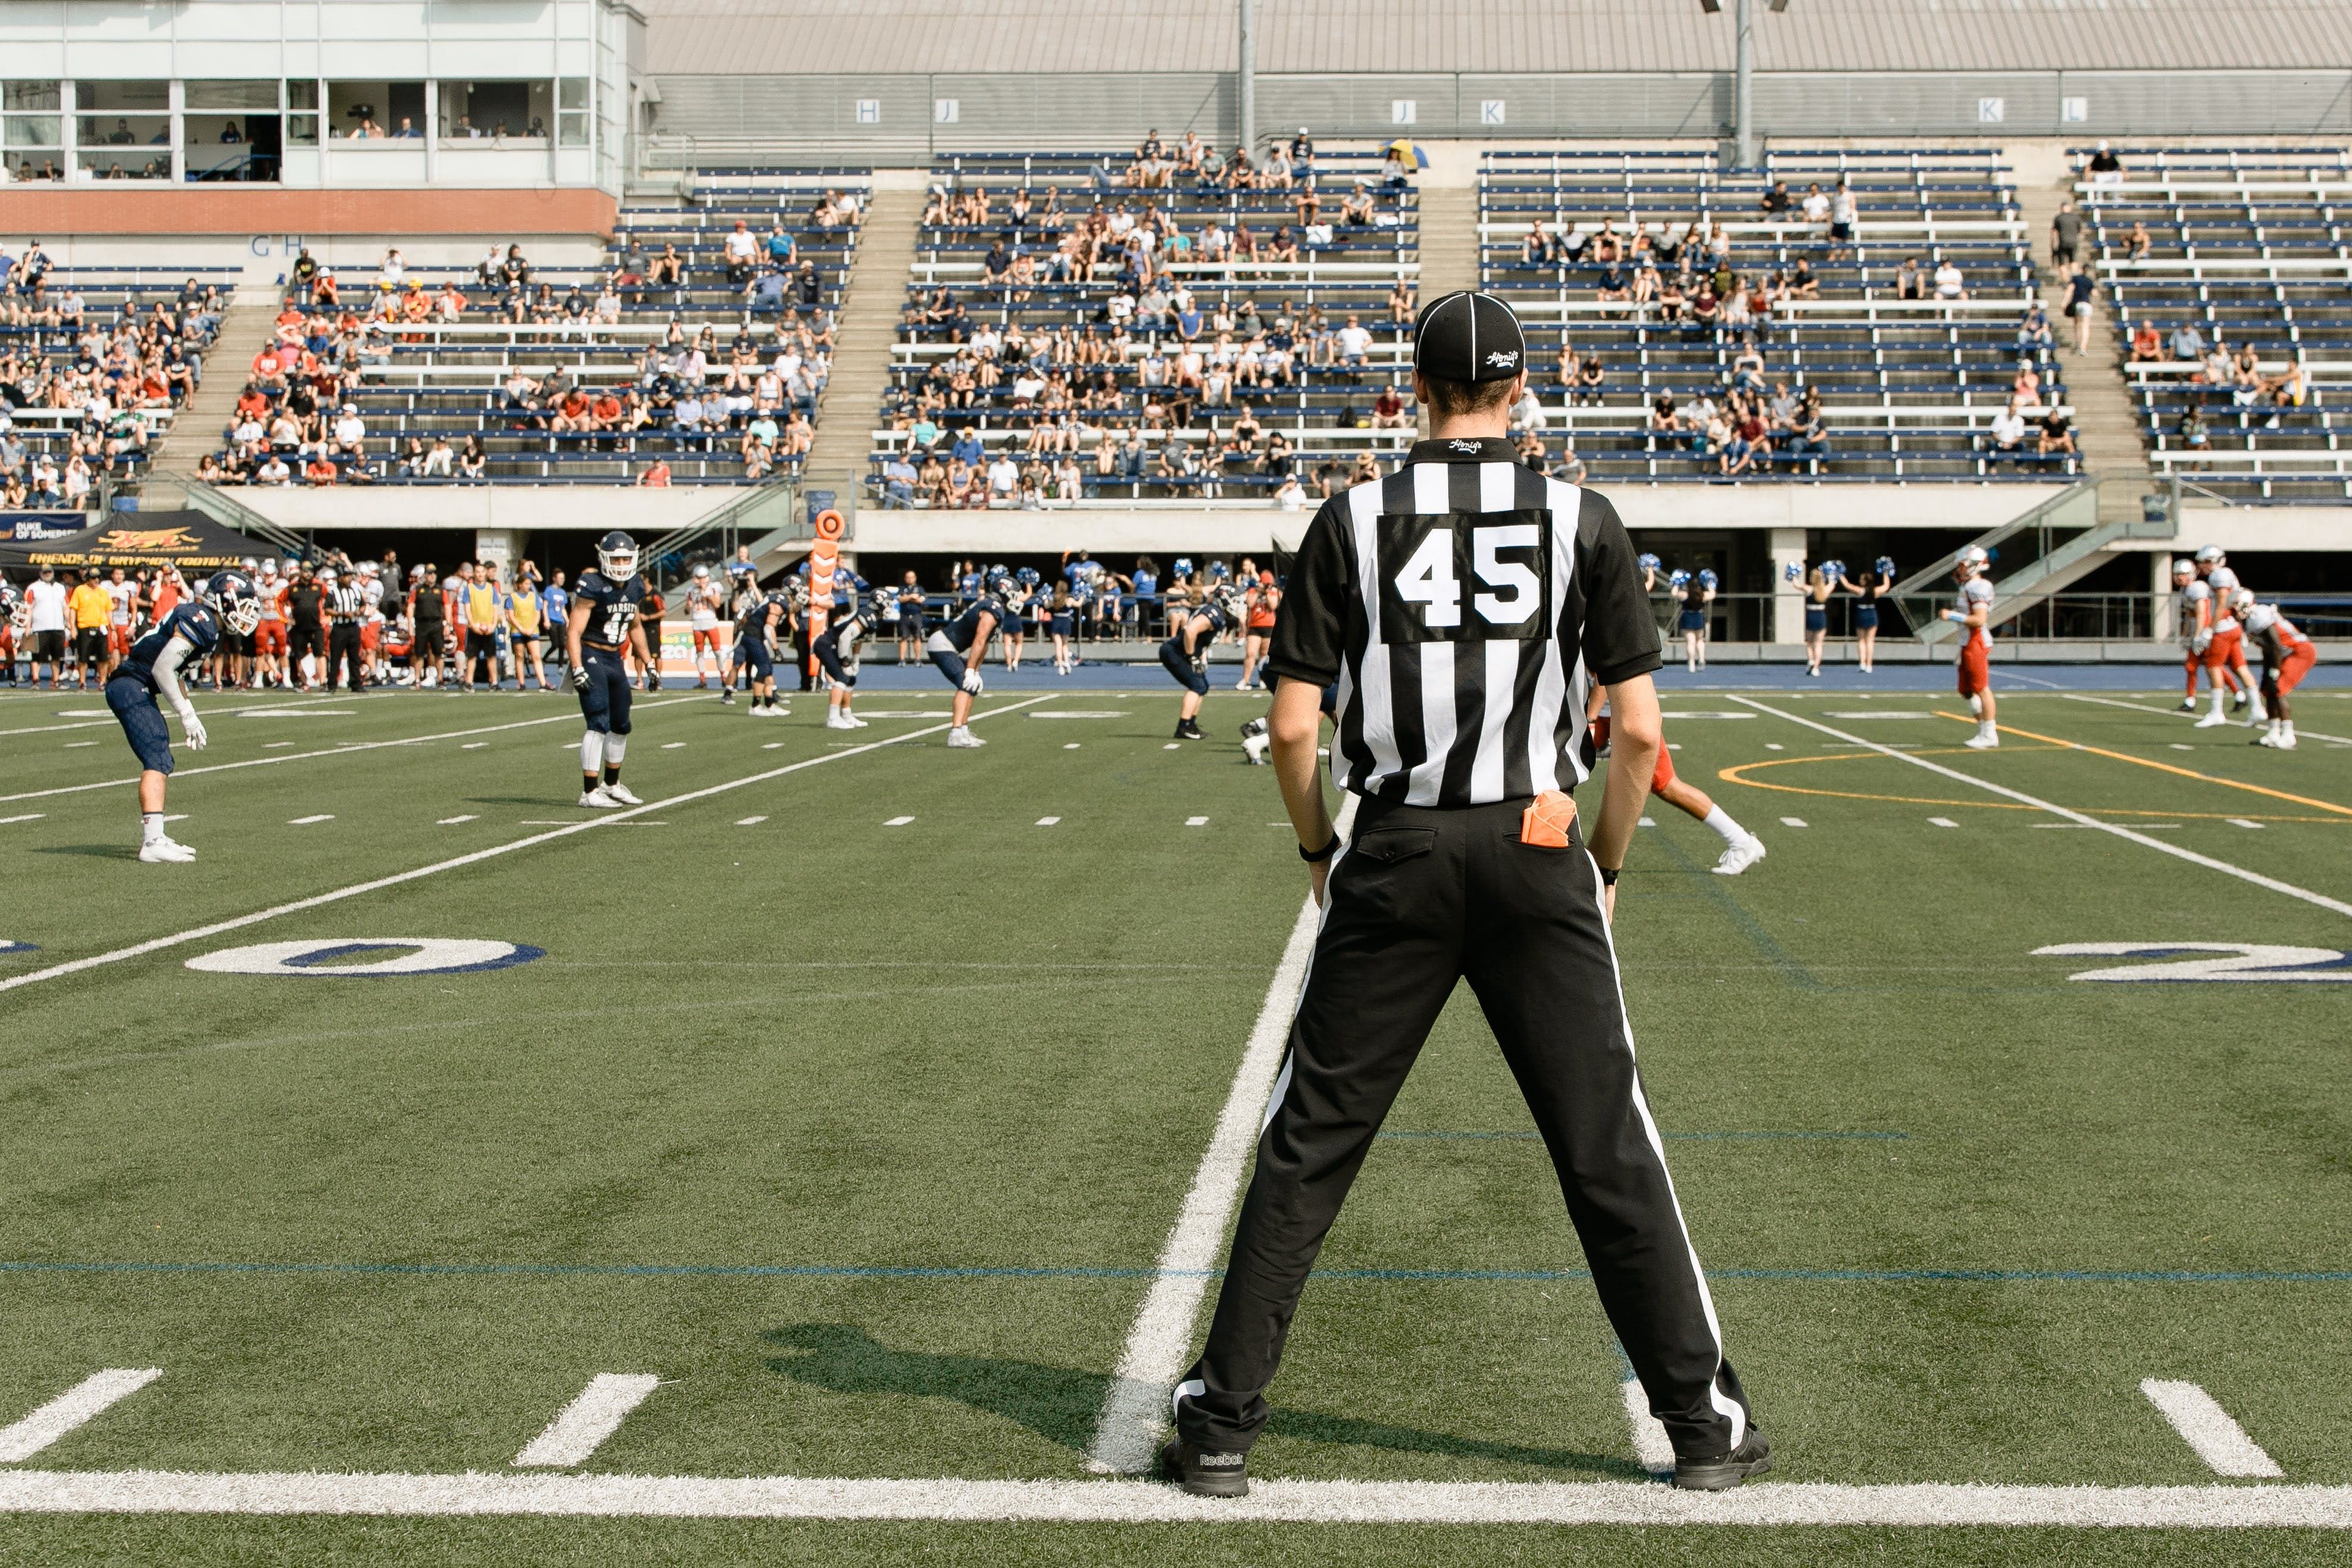 Man in Black and White Jersey Shirt and Black Pants Standing on Football Field